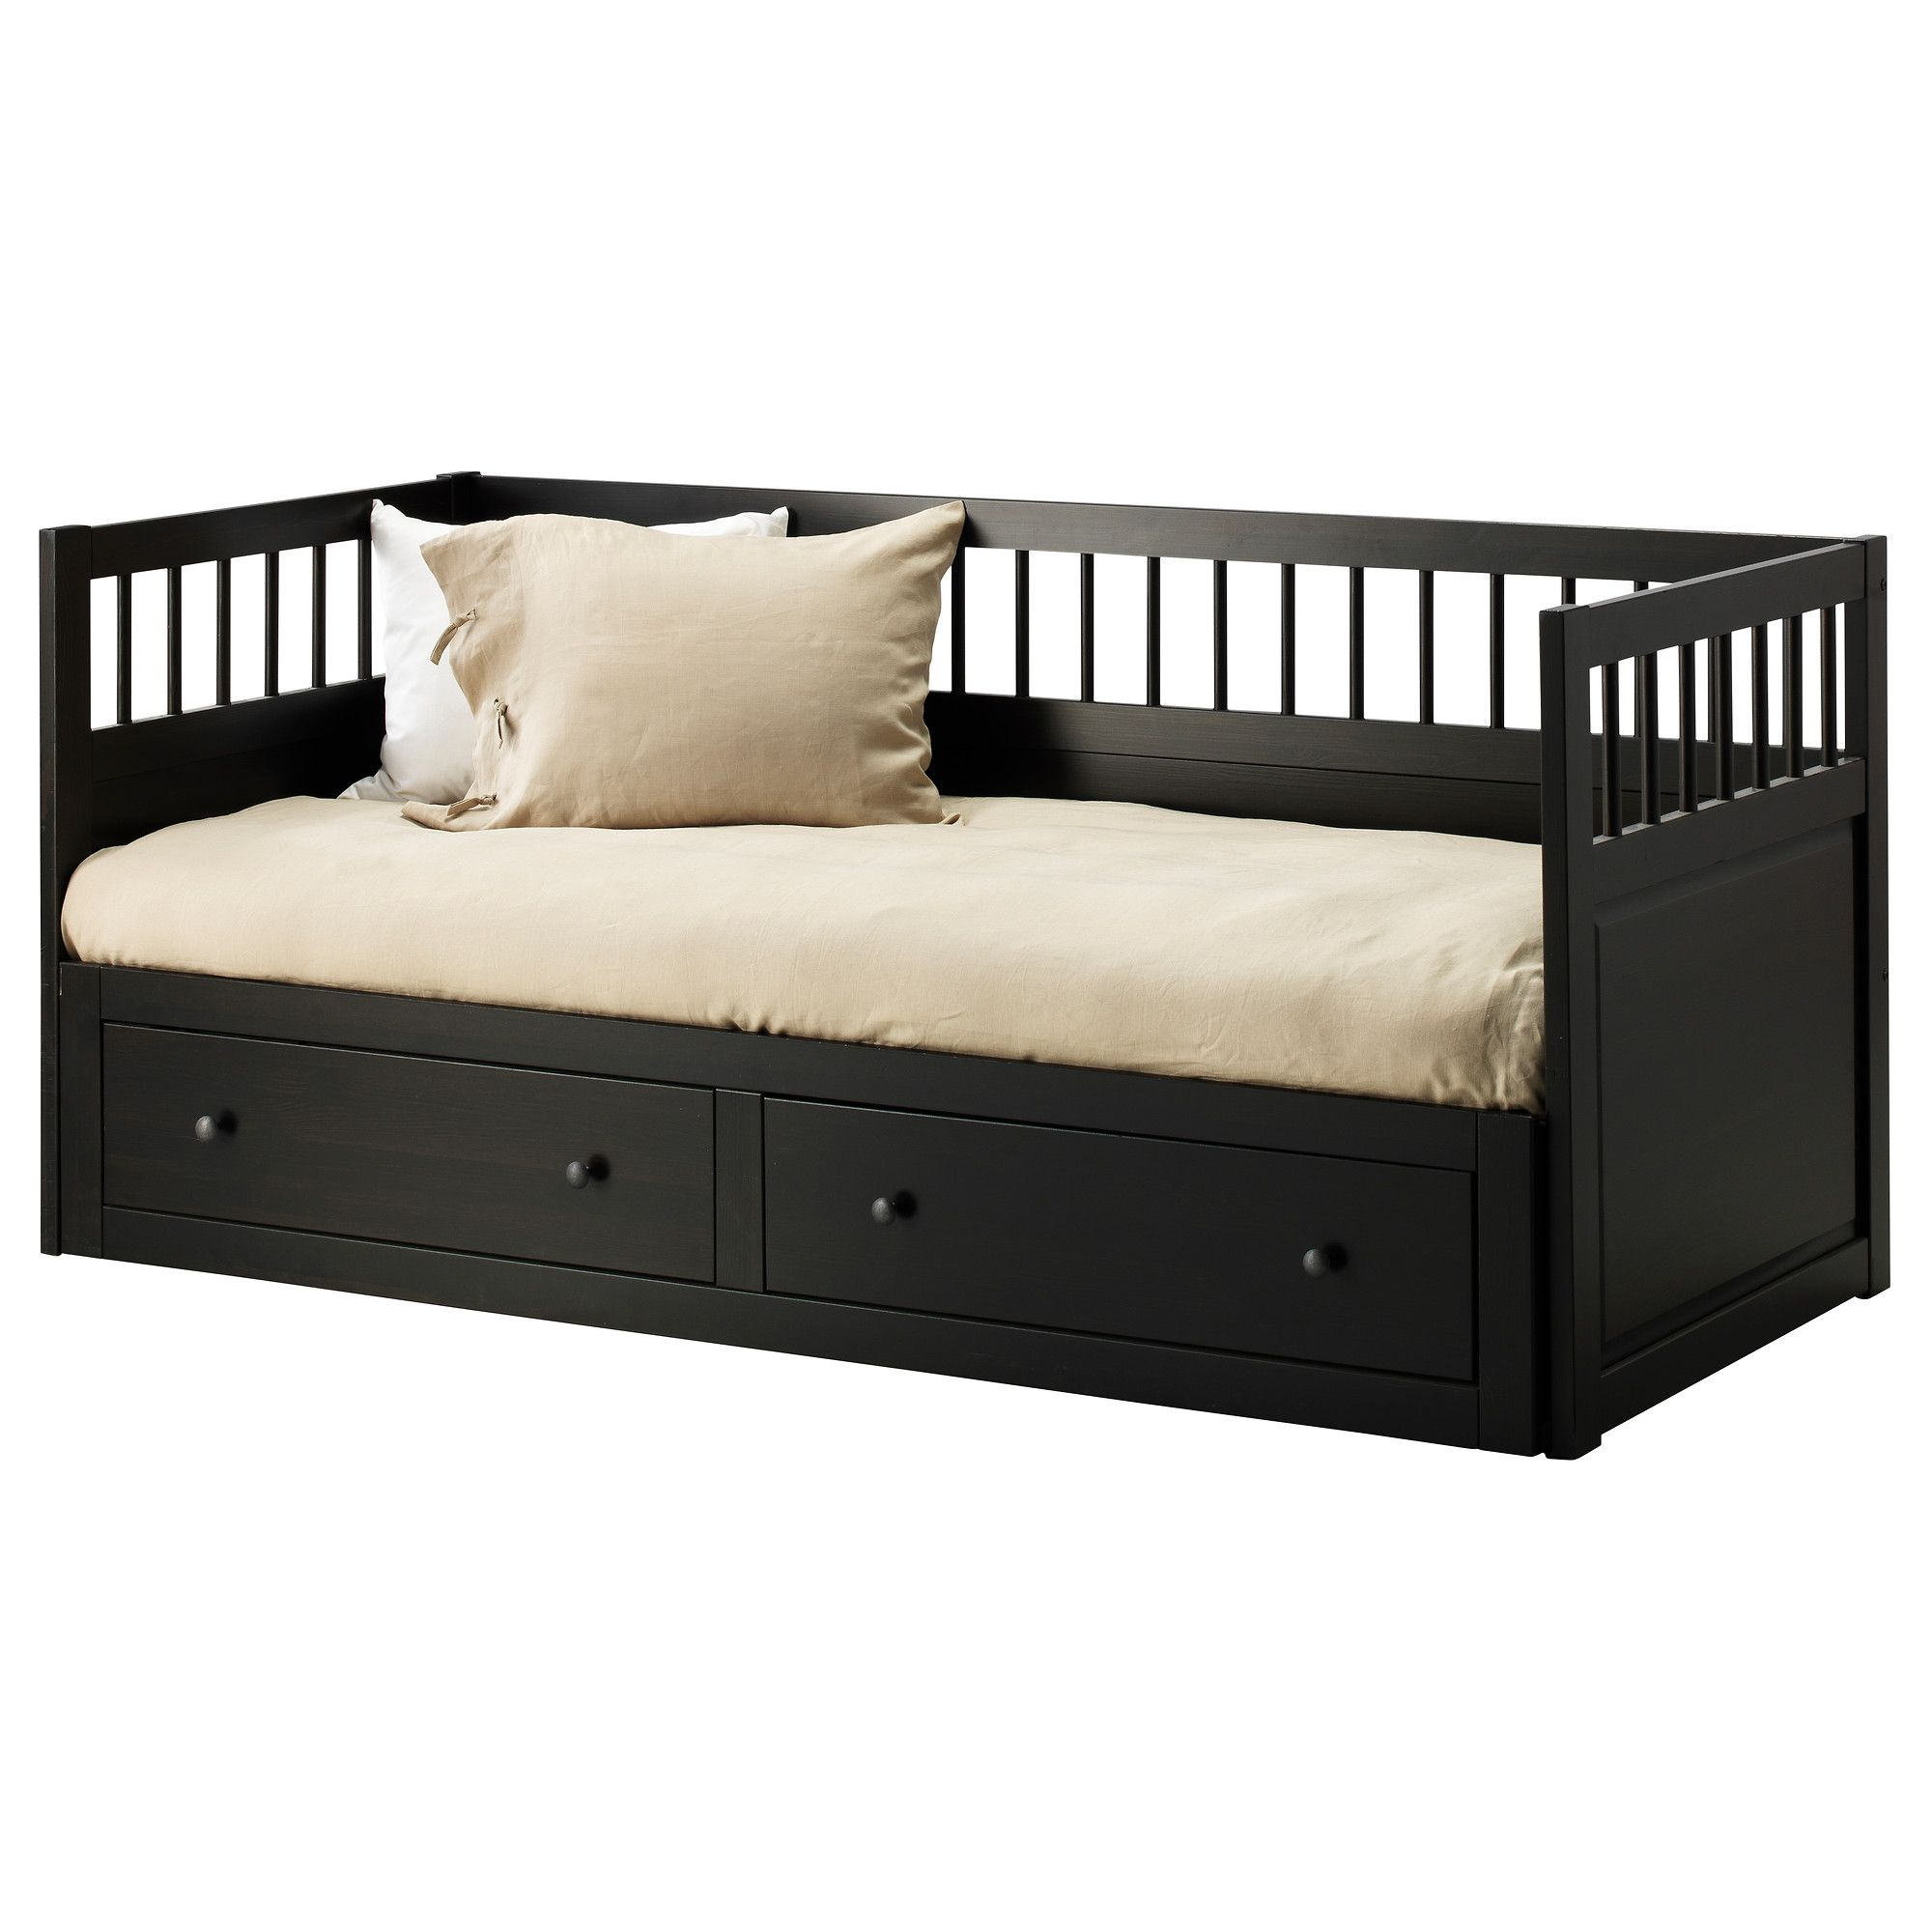 hemnes daybed frame with 2 drawers instructions